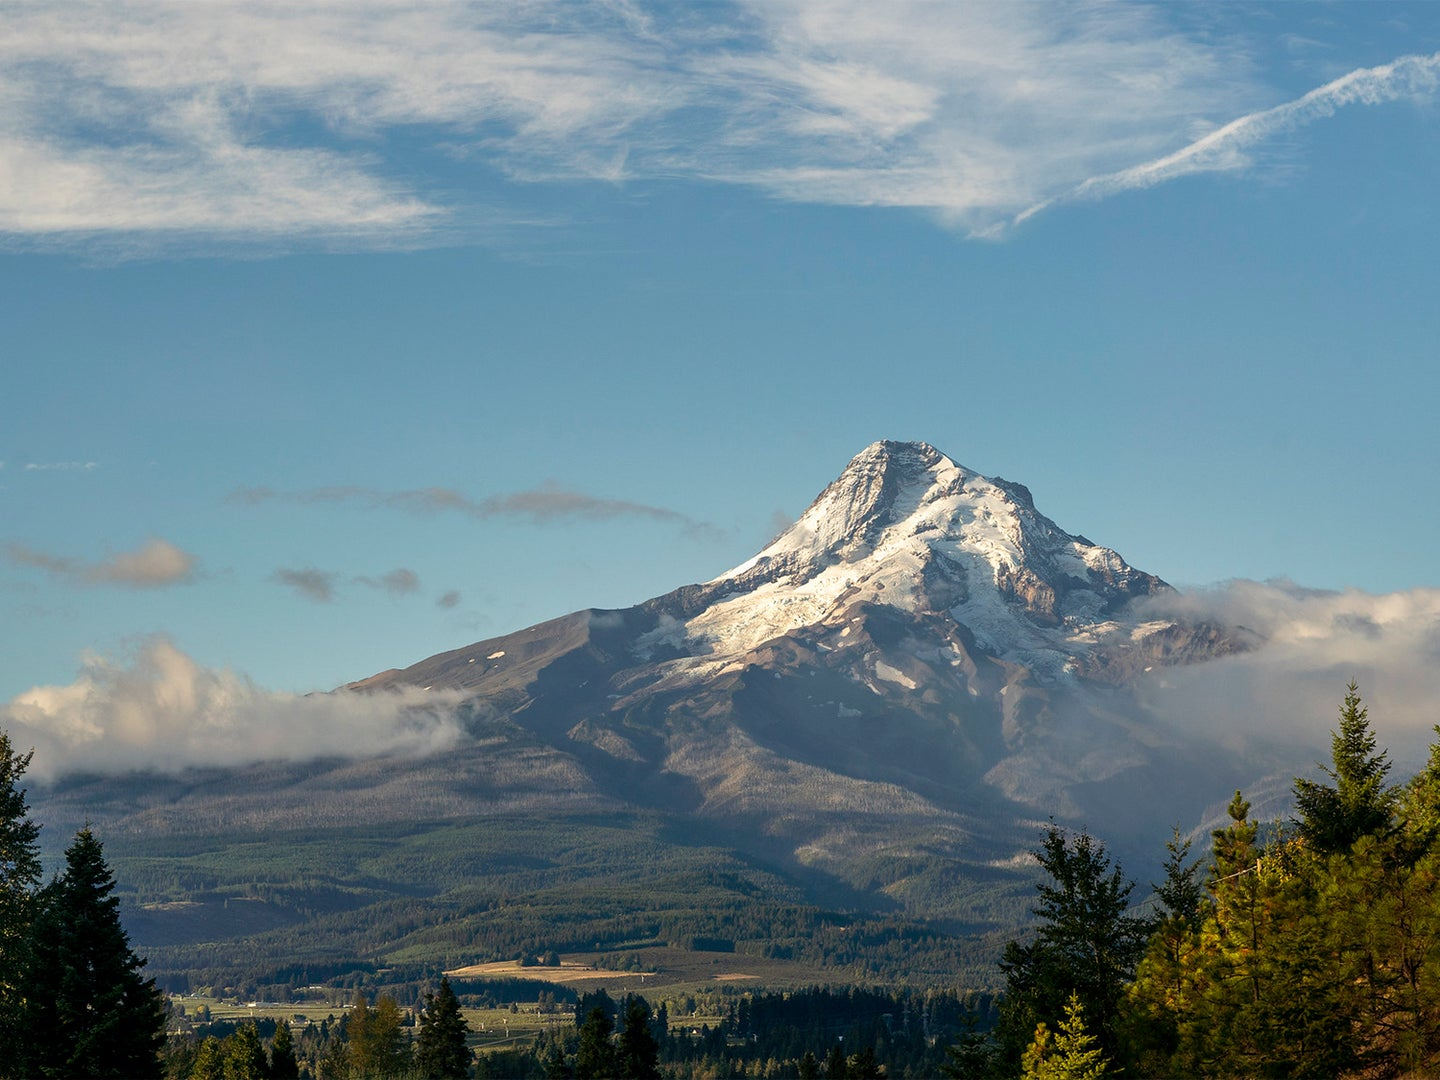 A view of Mount Hood National Forest in Oregon.